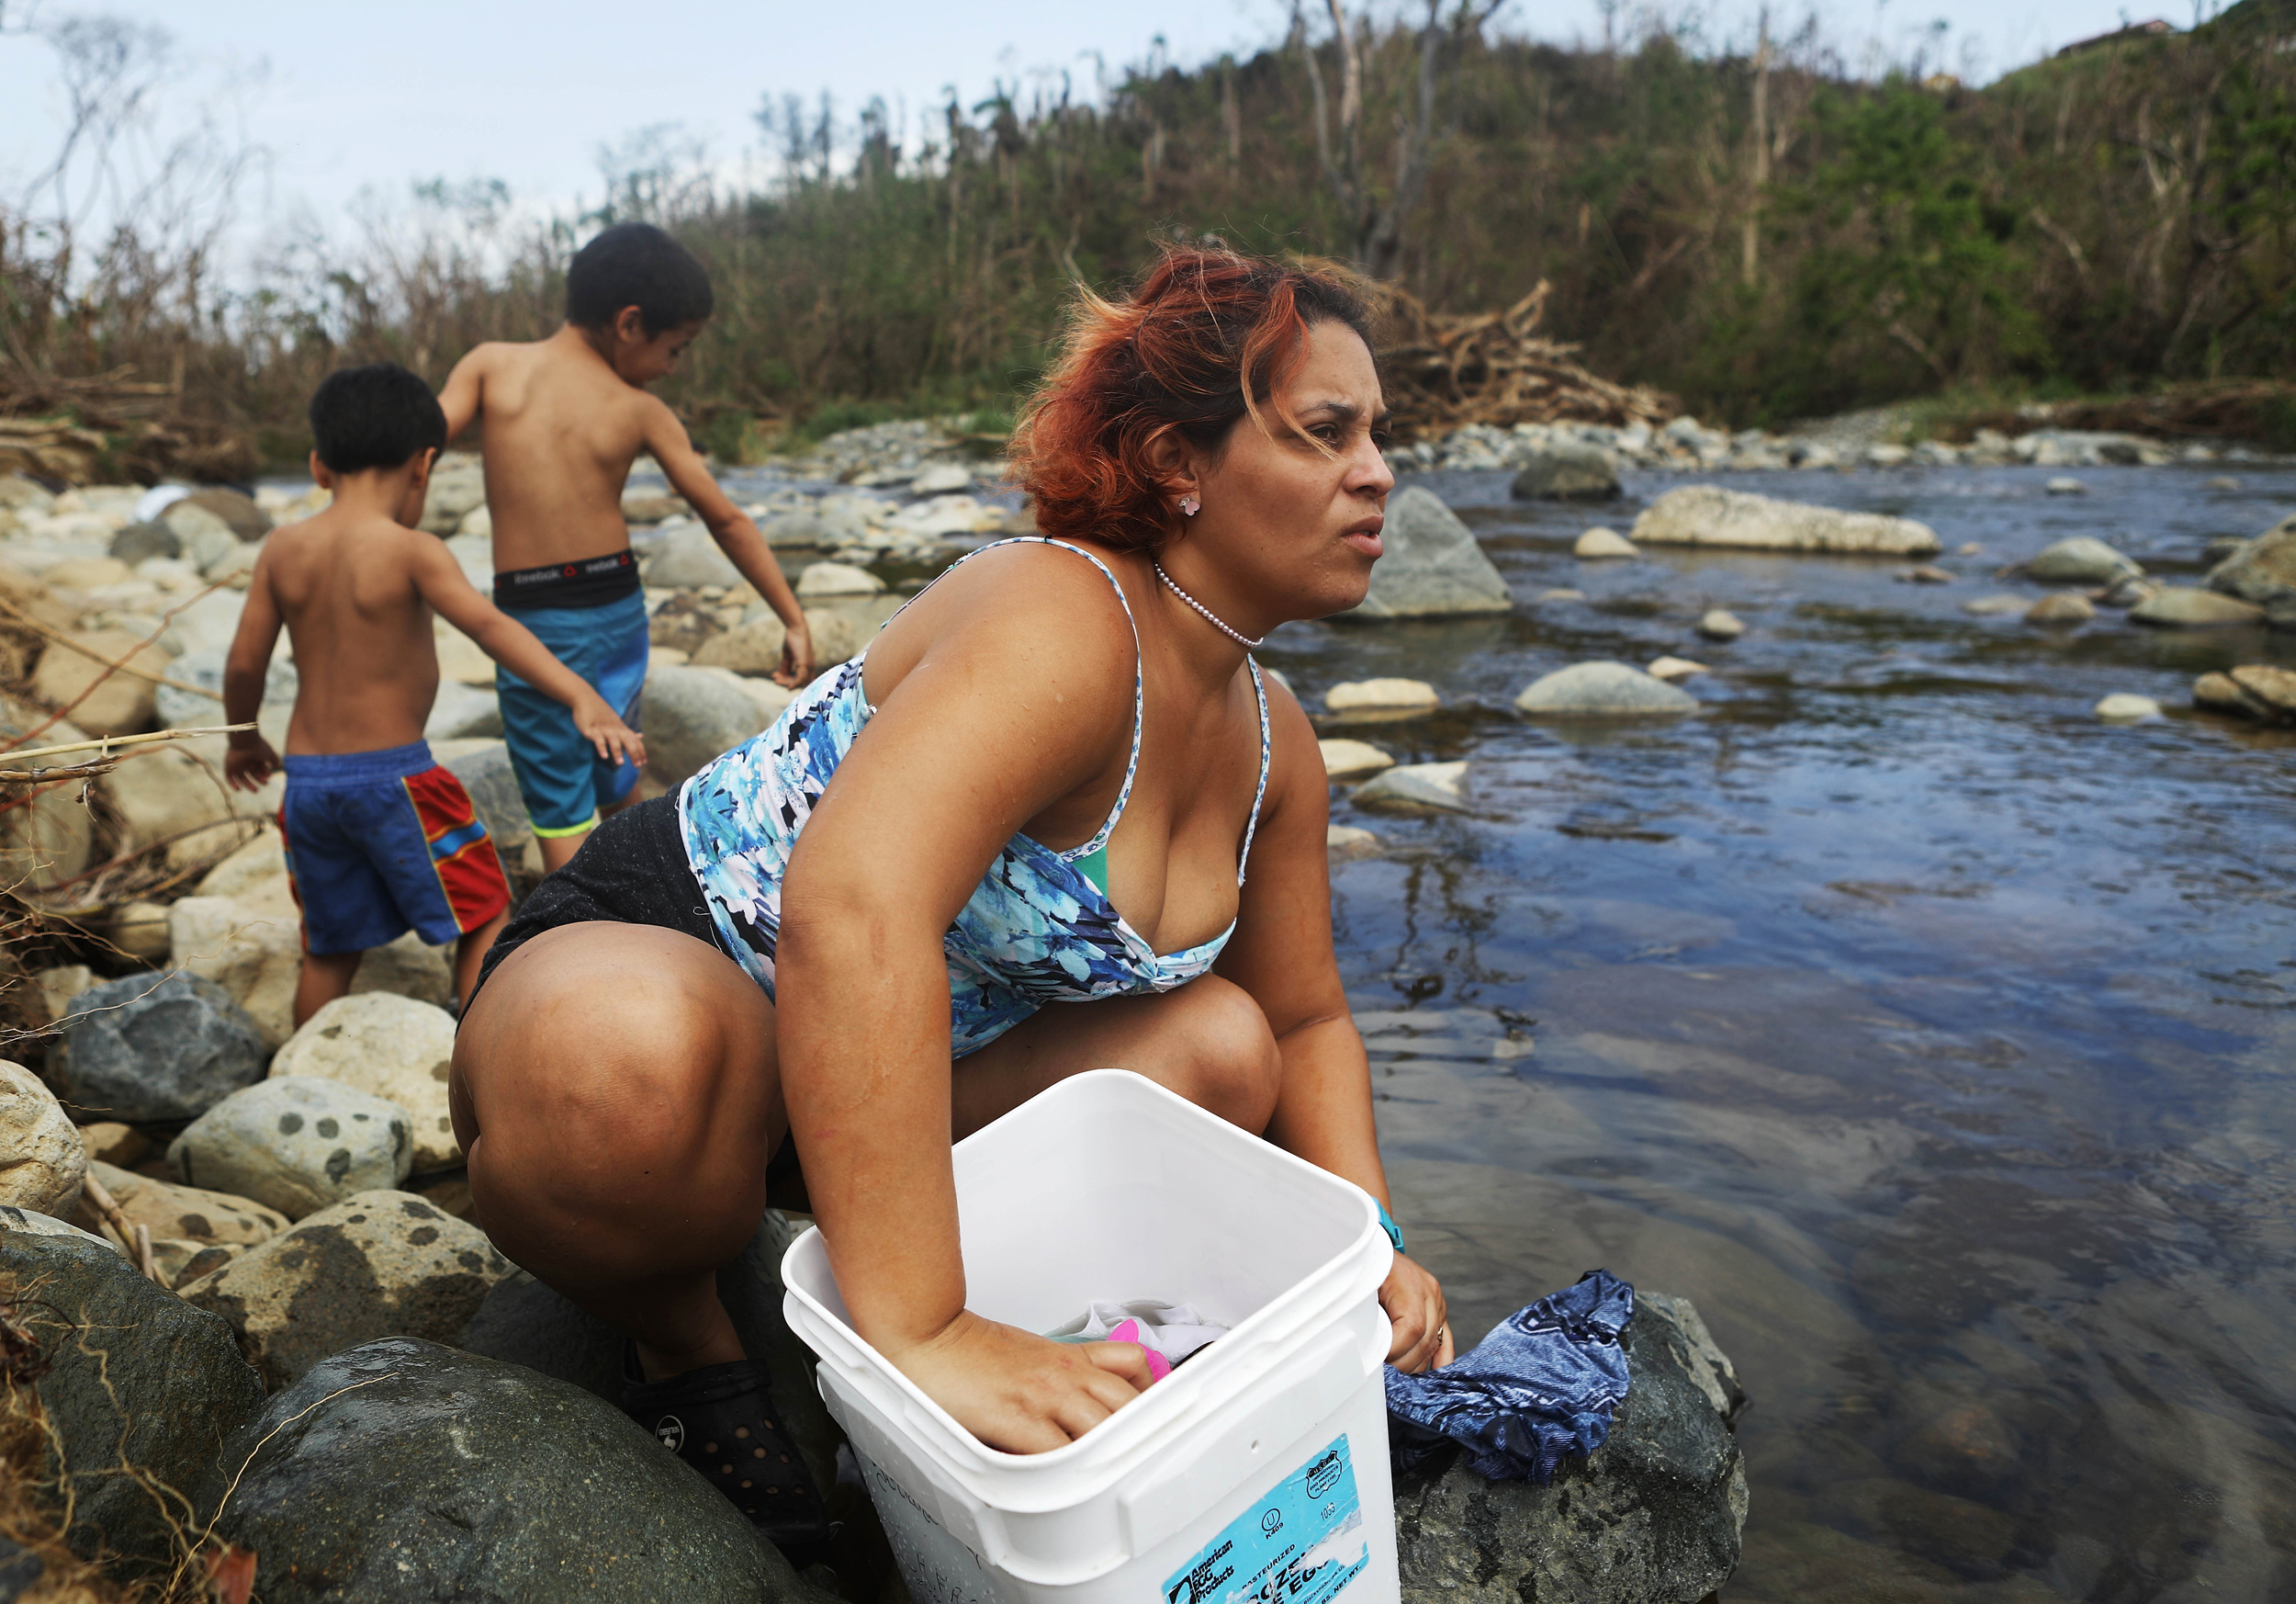 Image: A woman washes clothes with her sons in the Espiritu Santo river in Puerto Rico